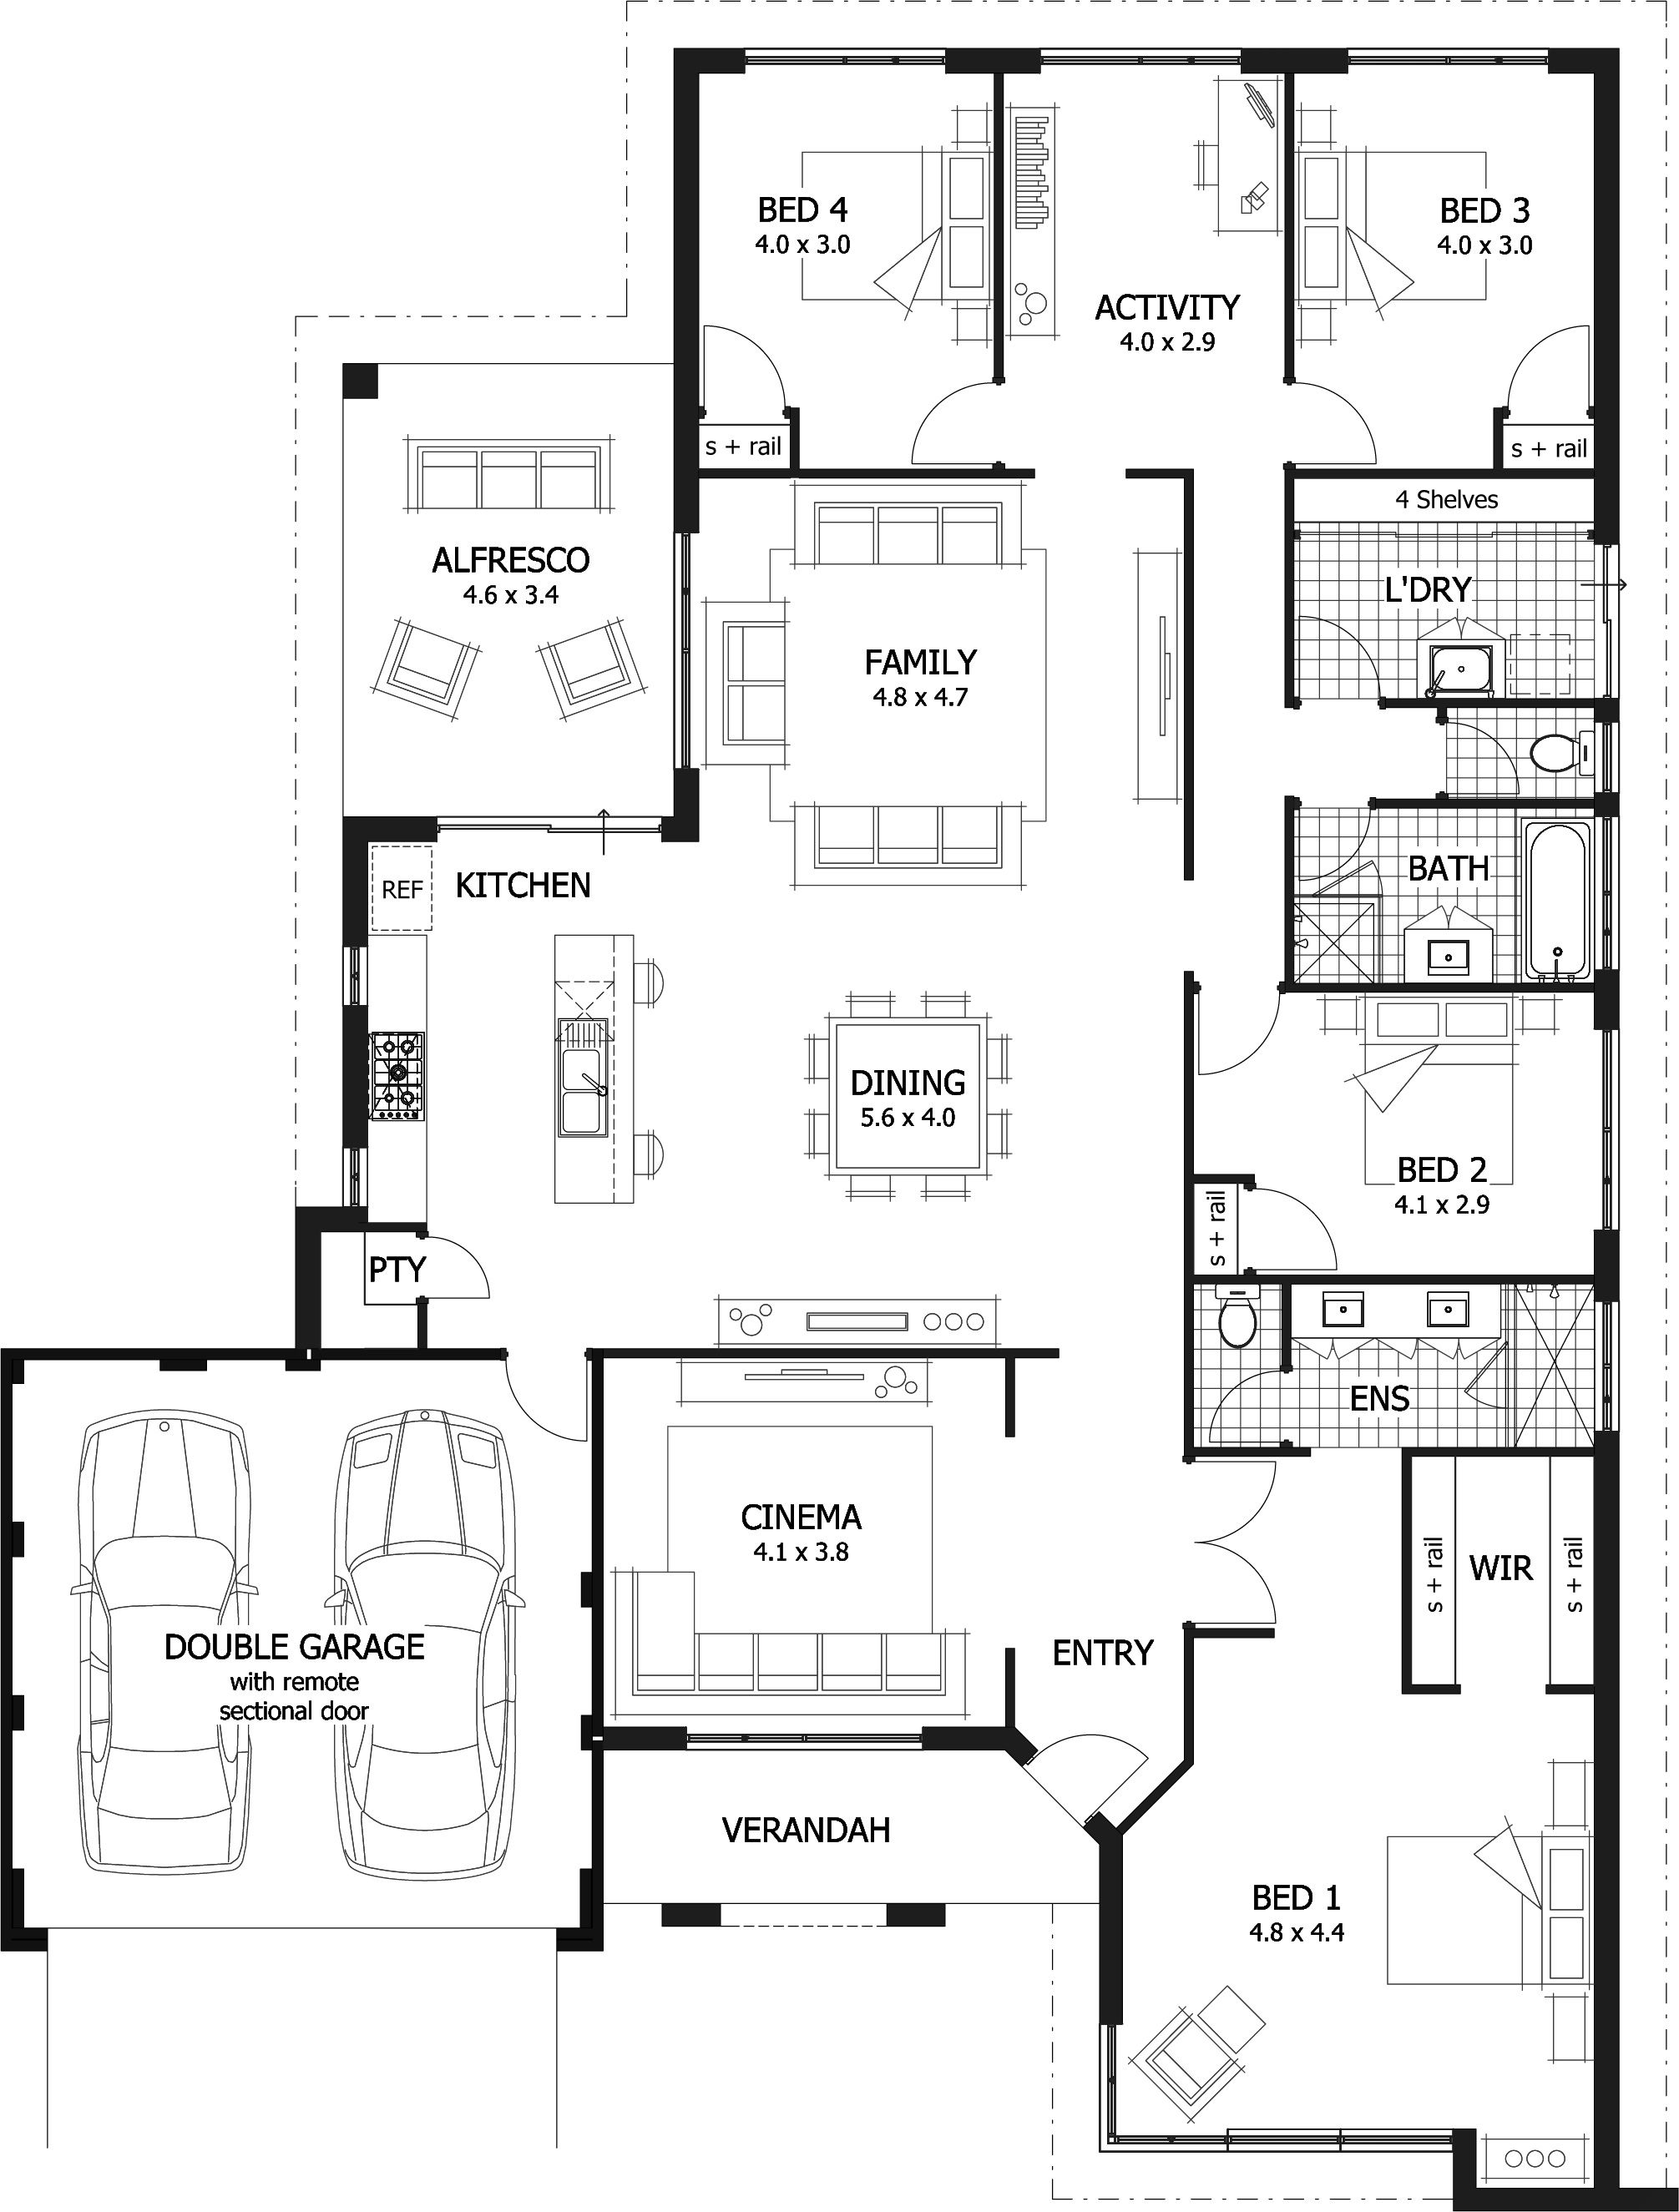 Find A 4 Bedroom Home That 39 S Right For You From Our